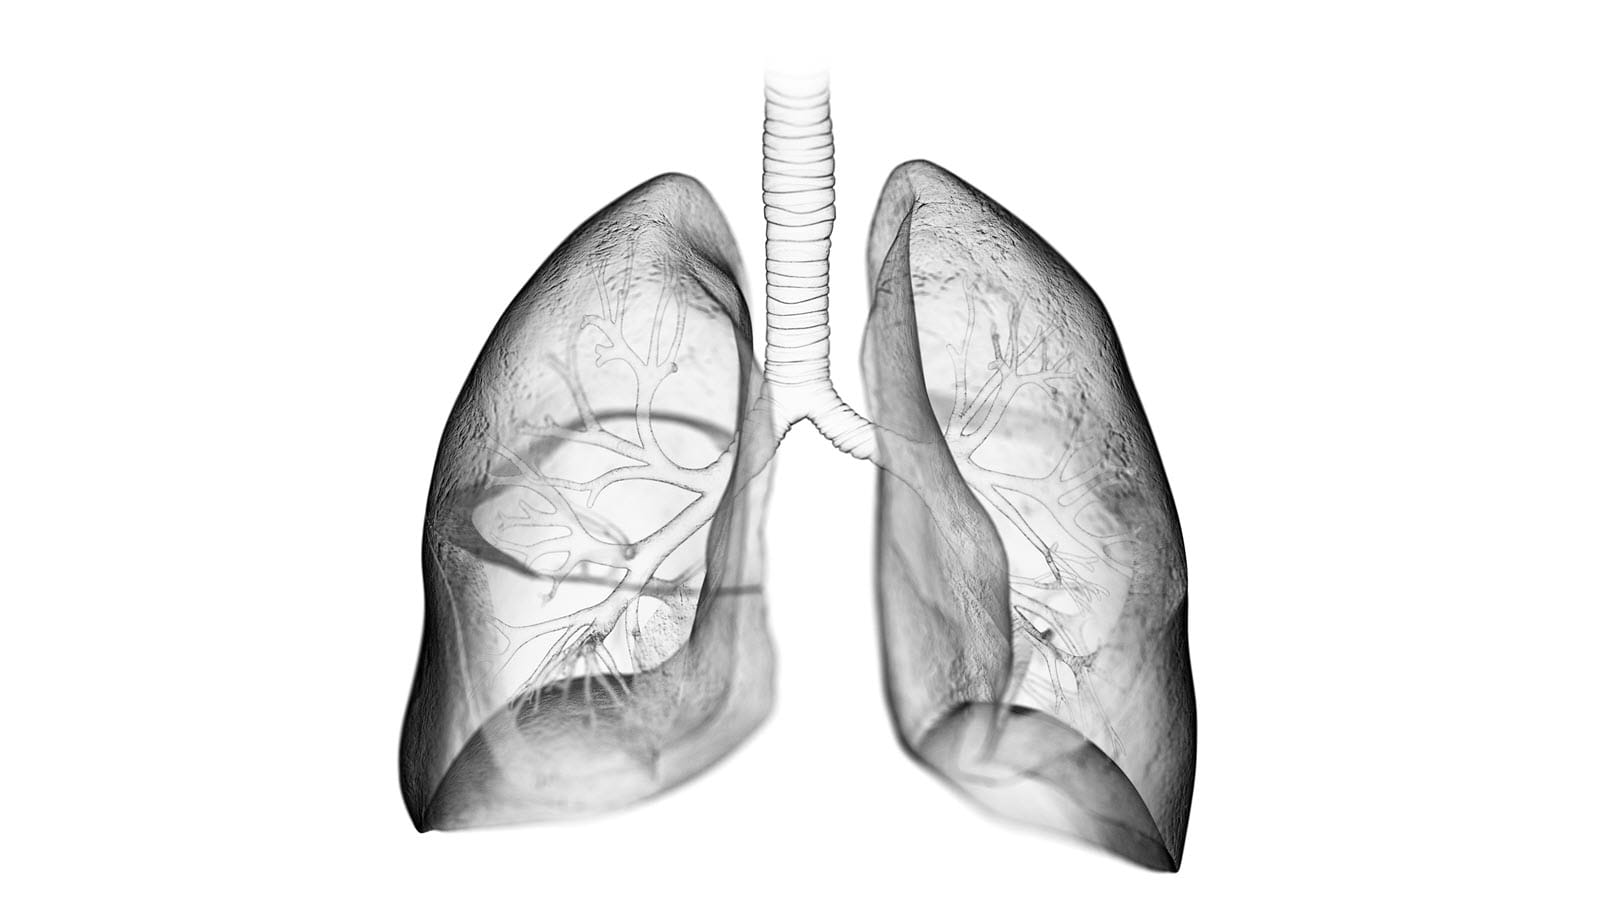 translucent image of the lungs